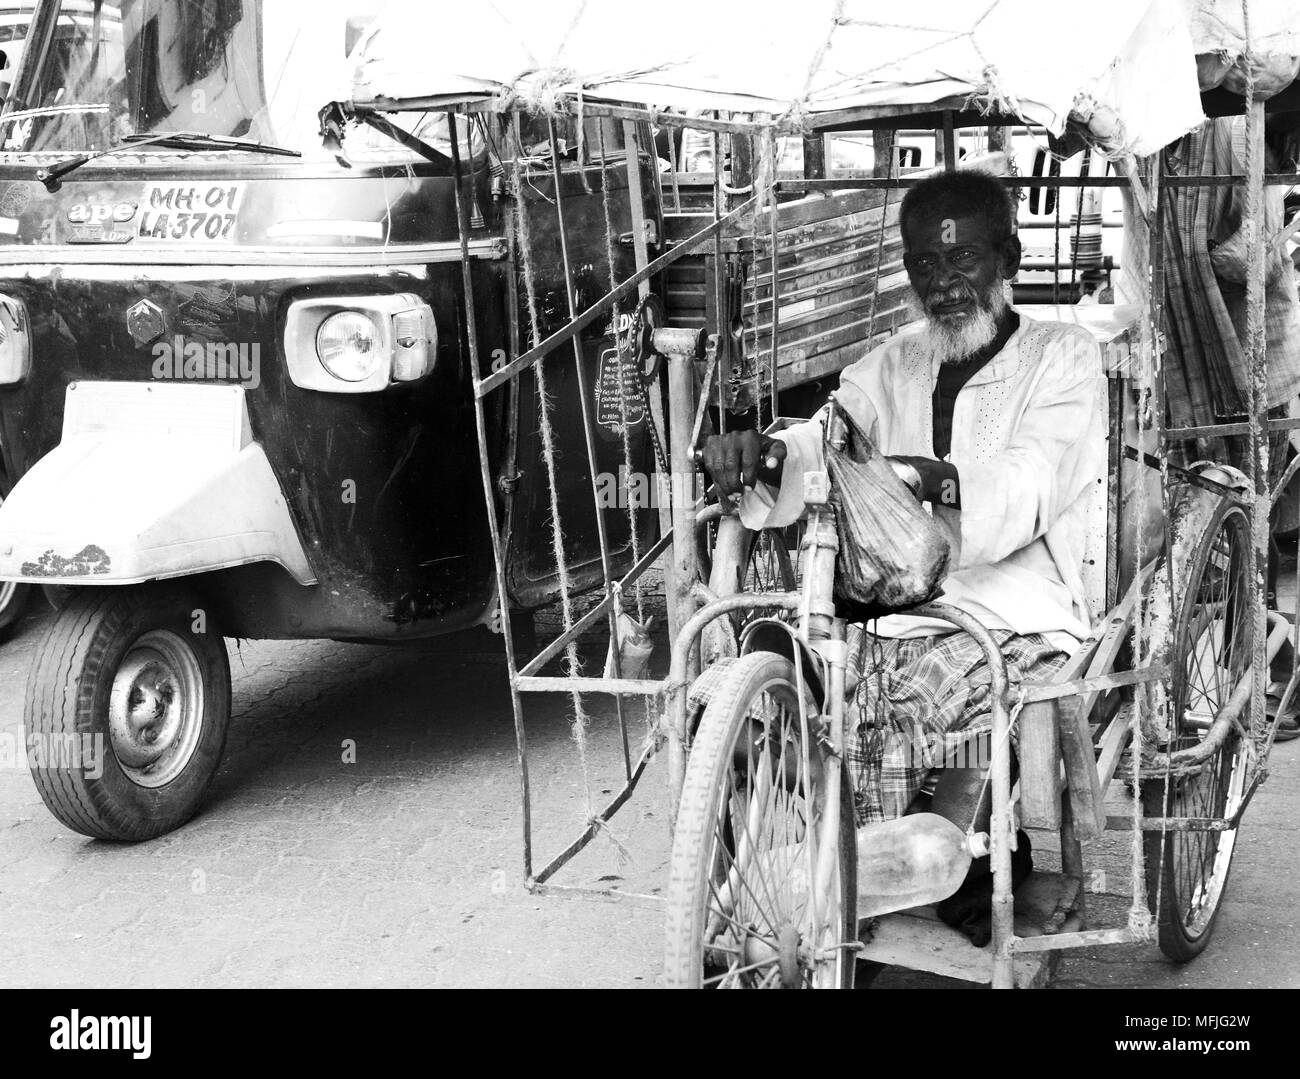 Old man amputee competing with the traffic on a hand powered rickshaw on a Mumbai street, India - Stock Image